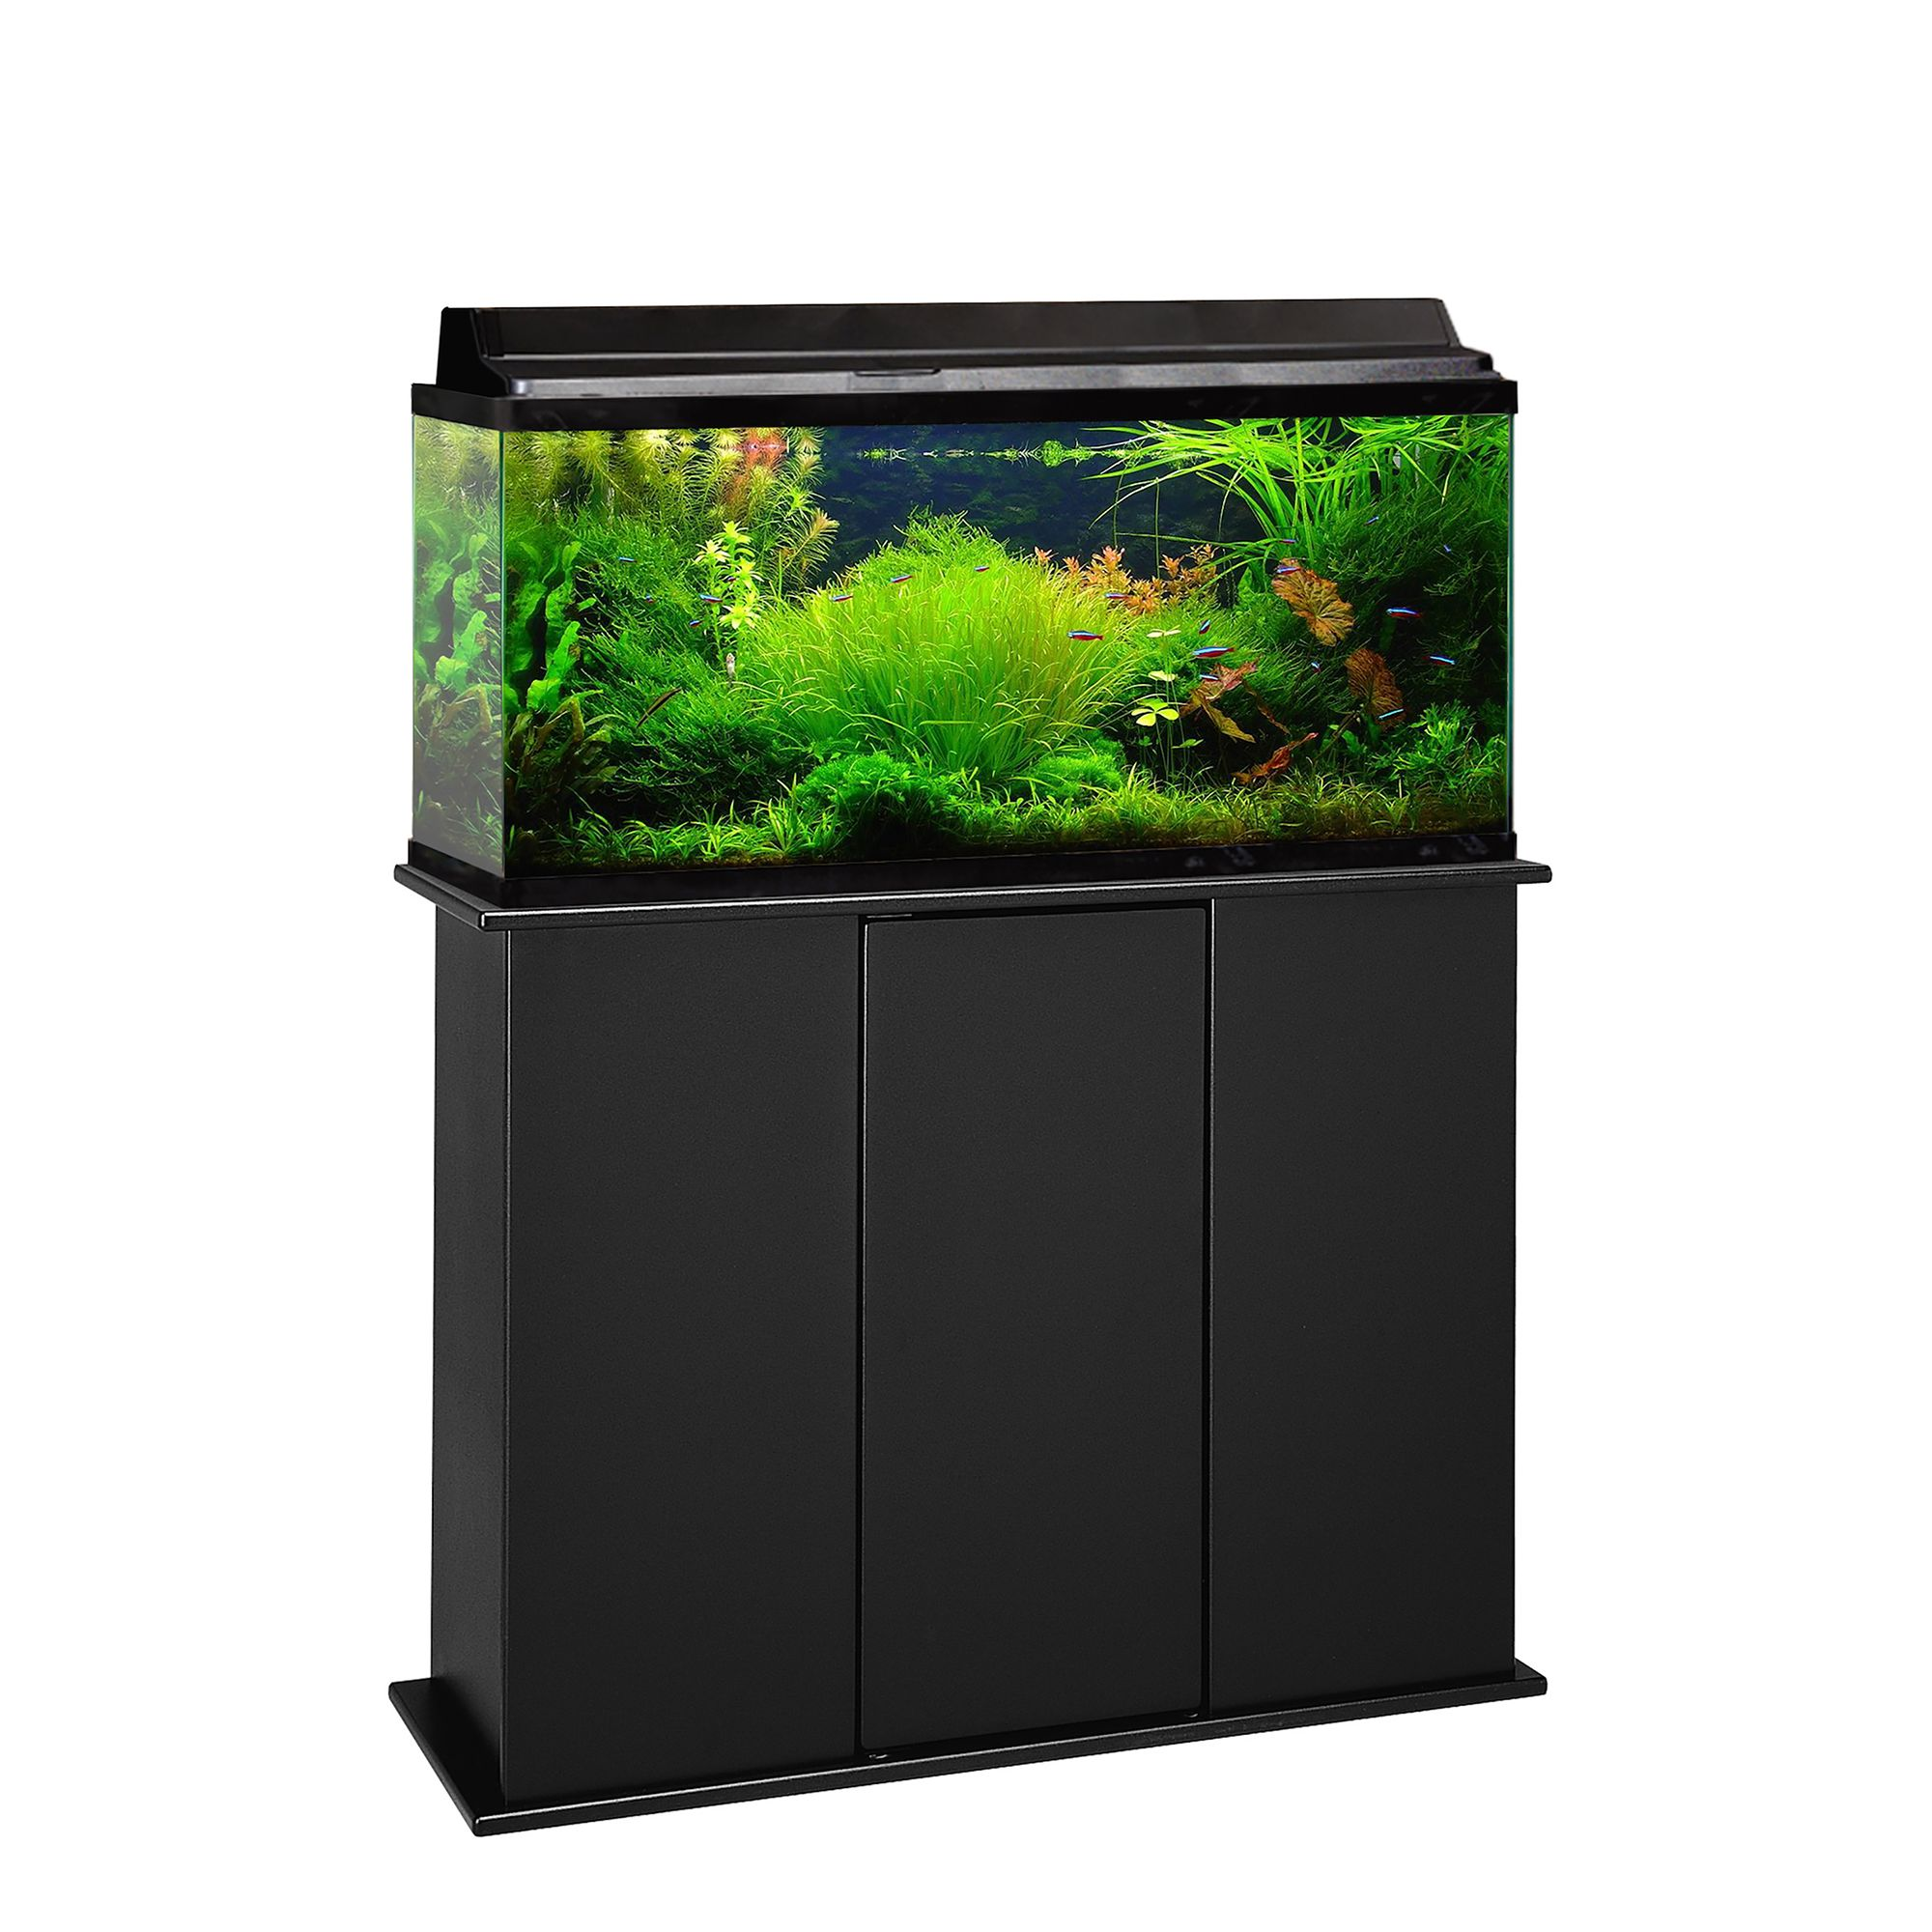 Marco 30 45 gallon upright aquarium stand red for 38 gallon fish tank